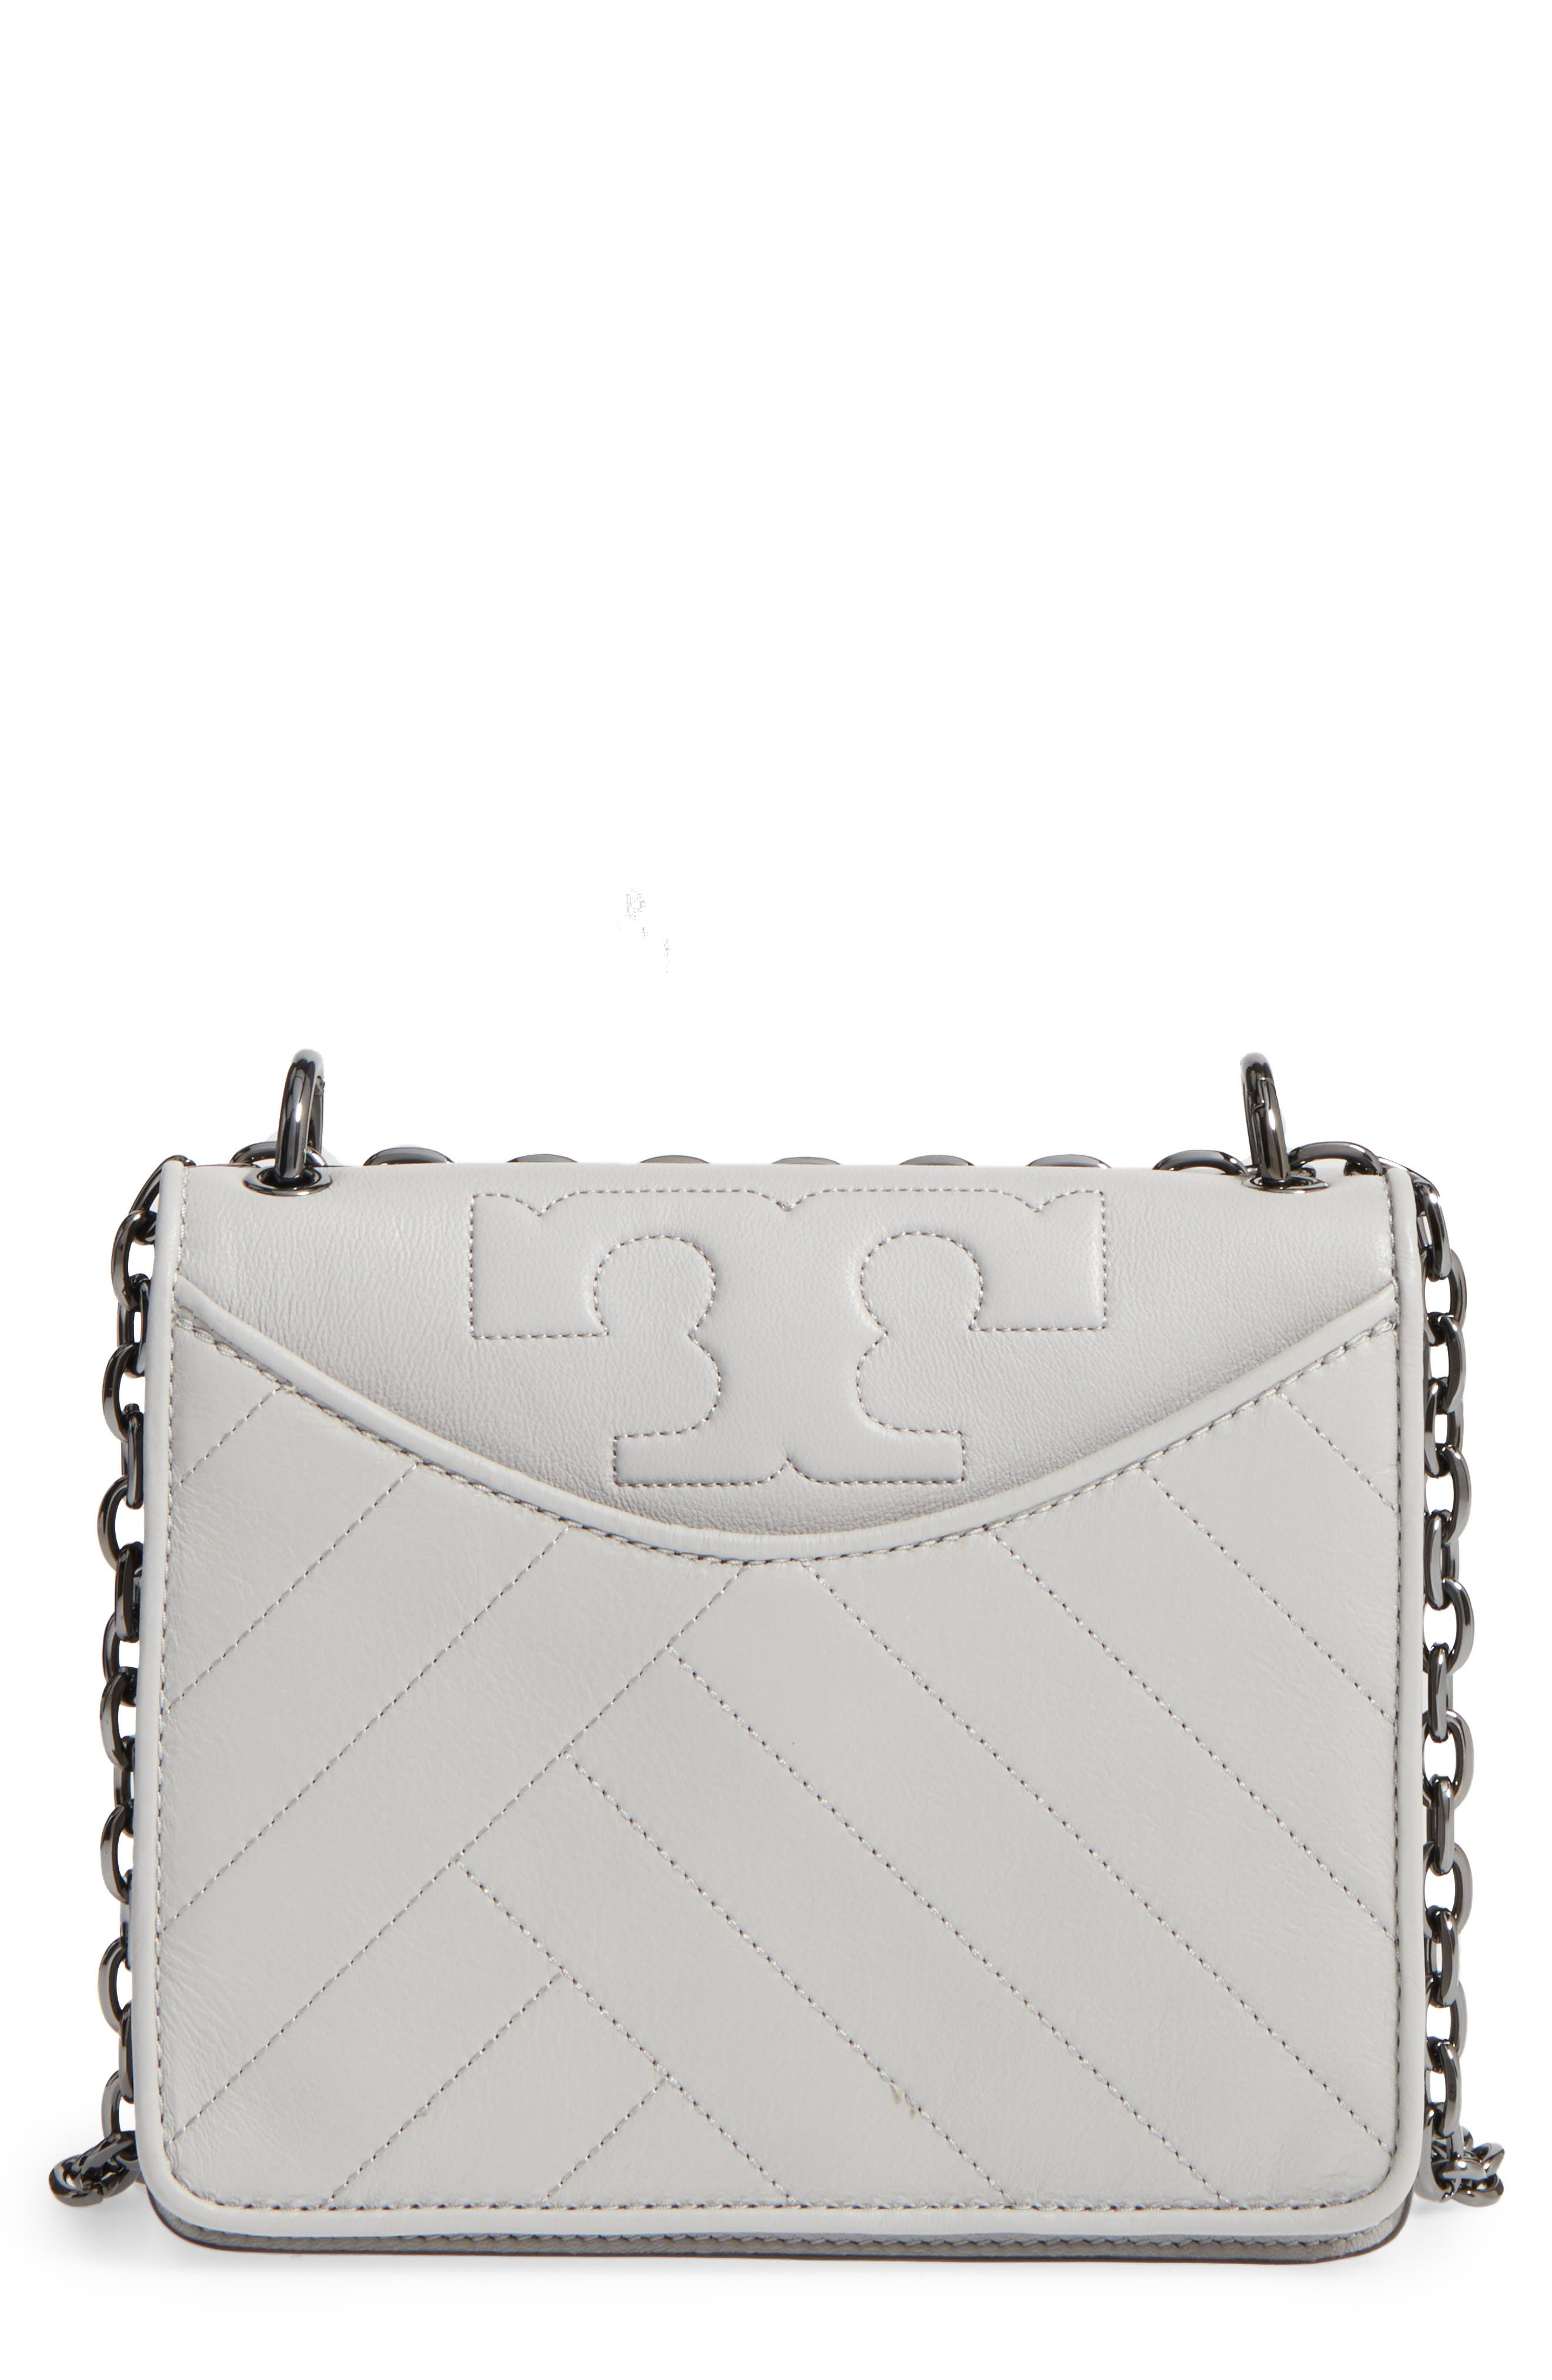 Main Image - Tory Burch Chevron Quilted Leather Crossbody Bag